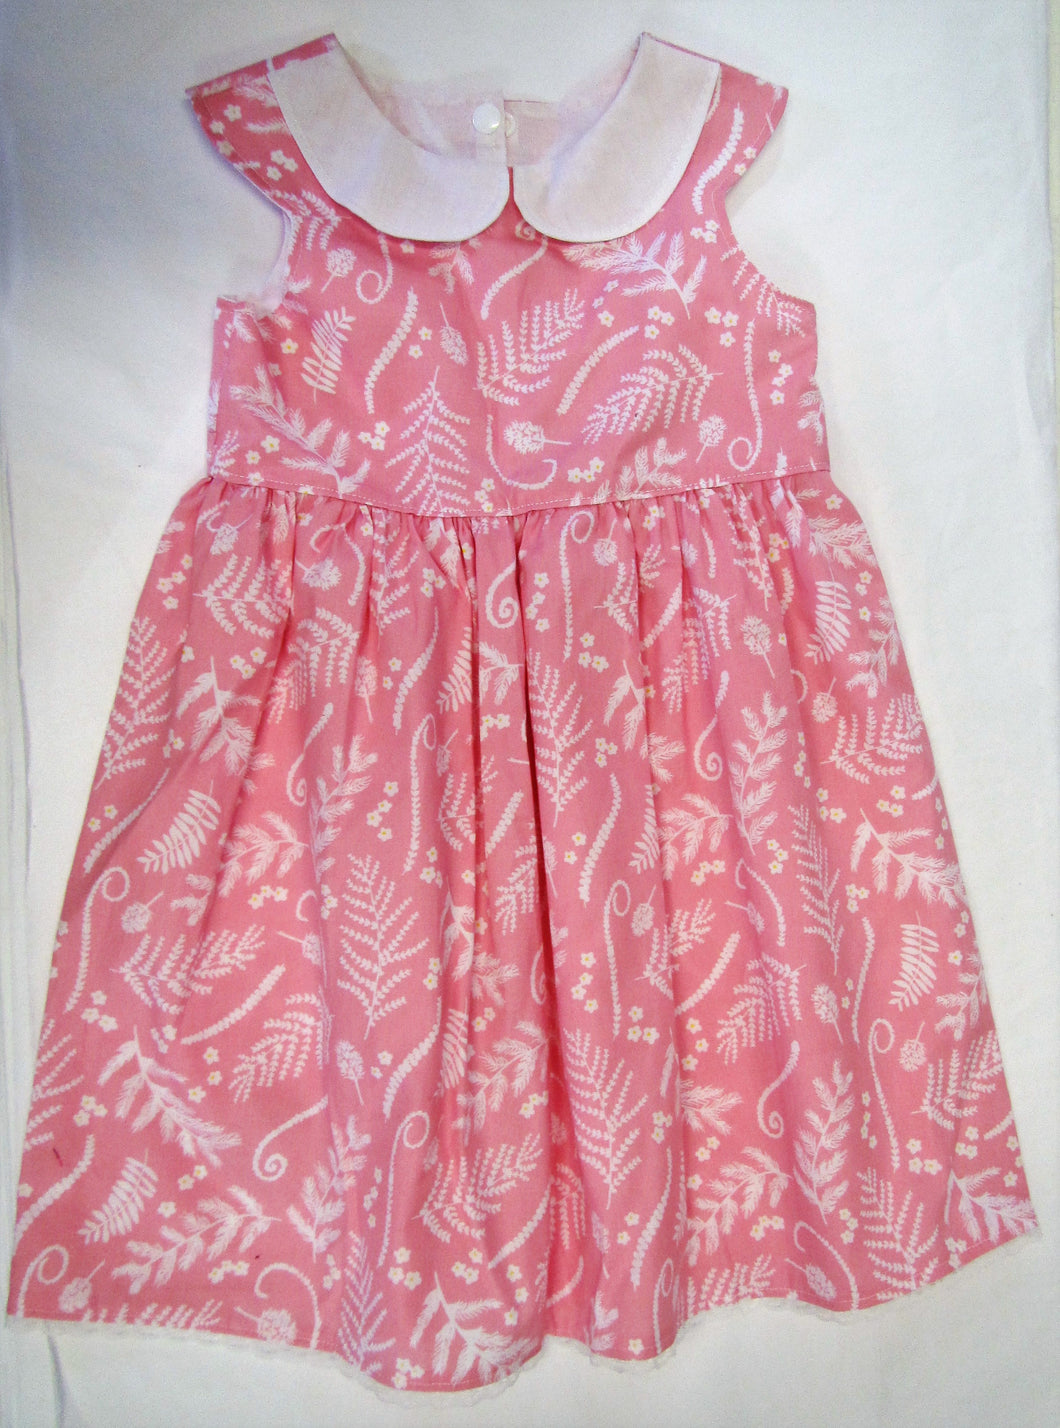 Hand crafted pink and white fern dress 2-3 years